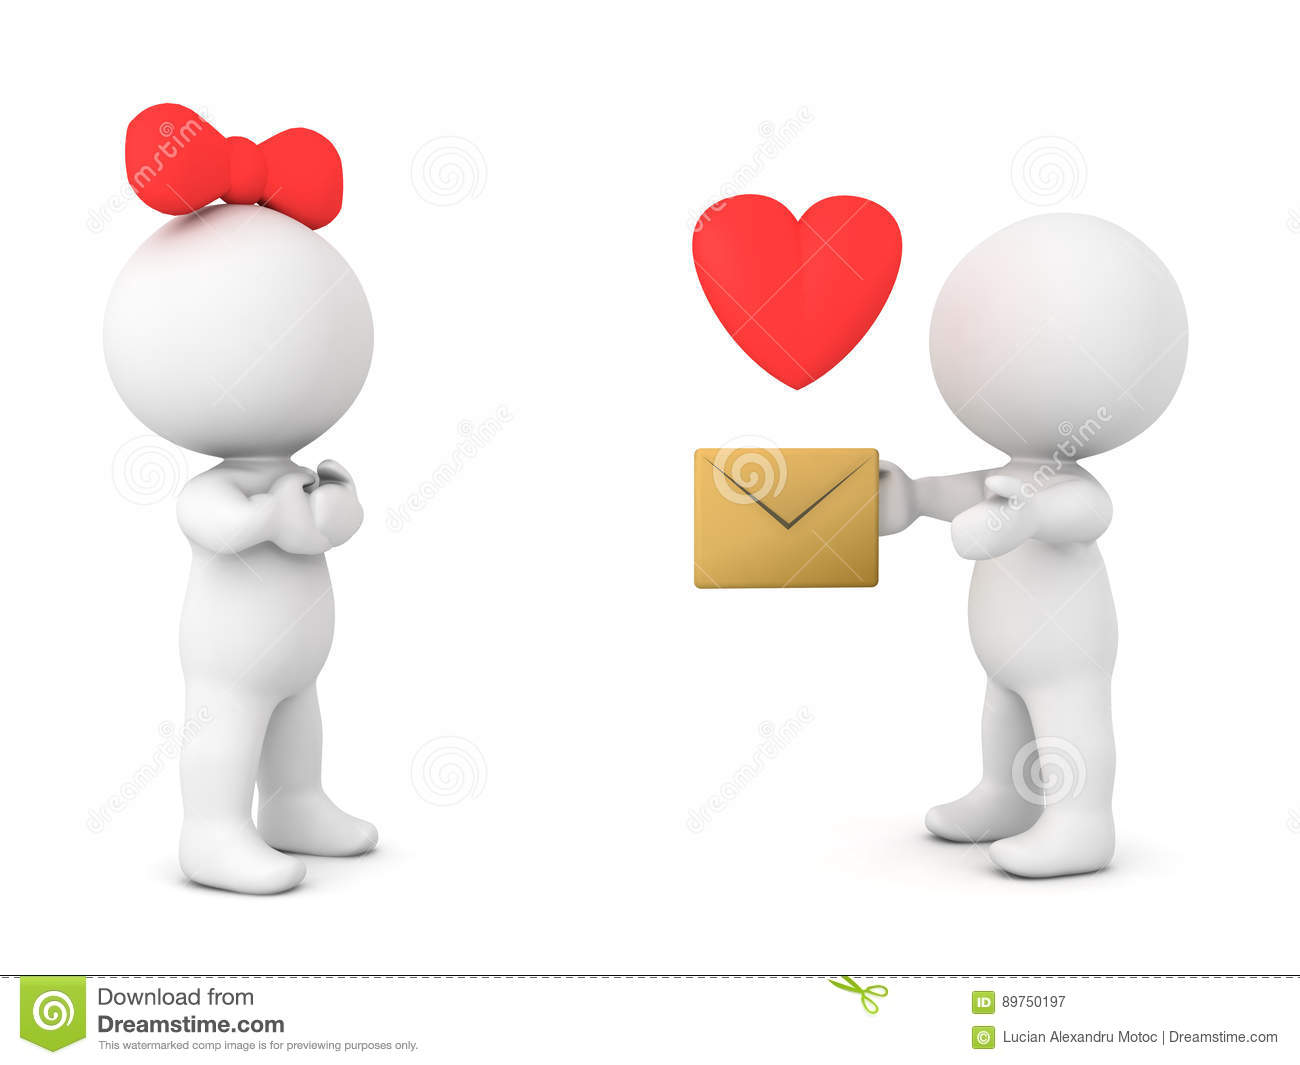 Send A Love Letter from thumbs.dreamstime.com